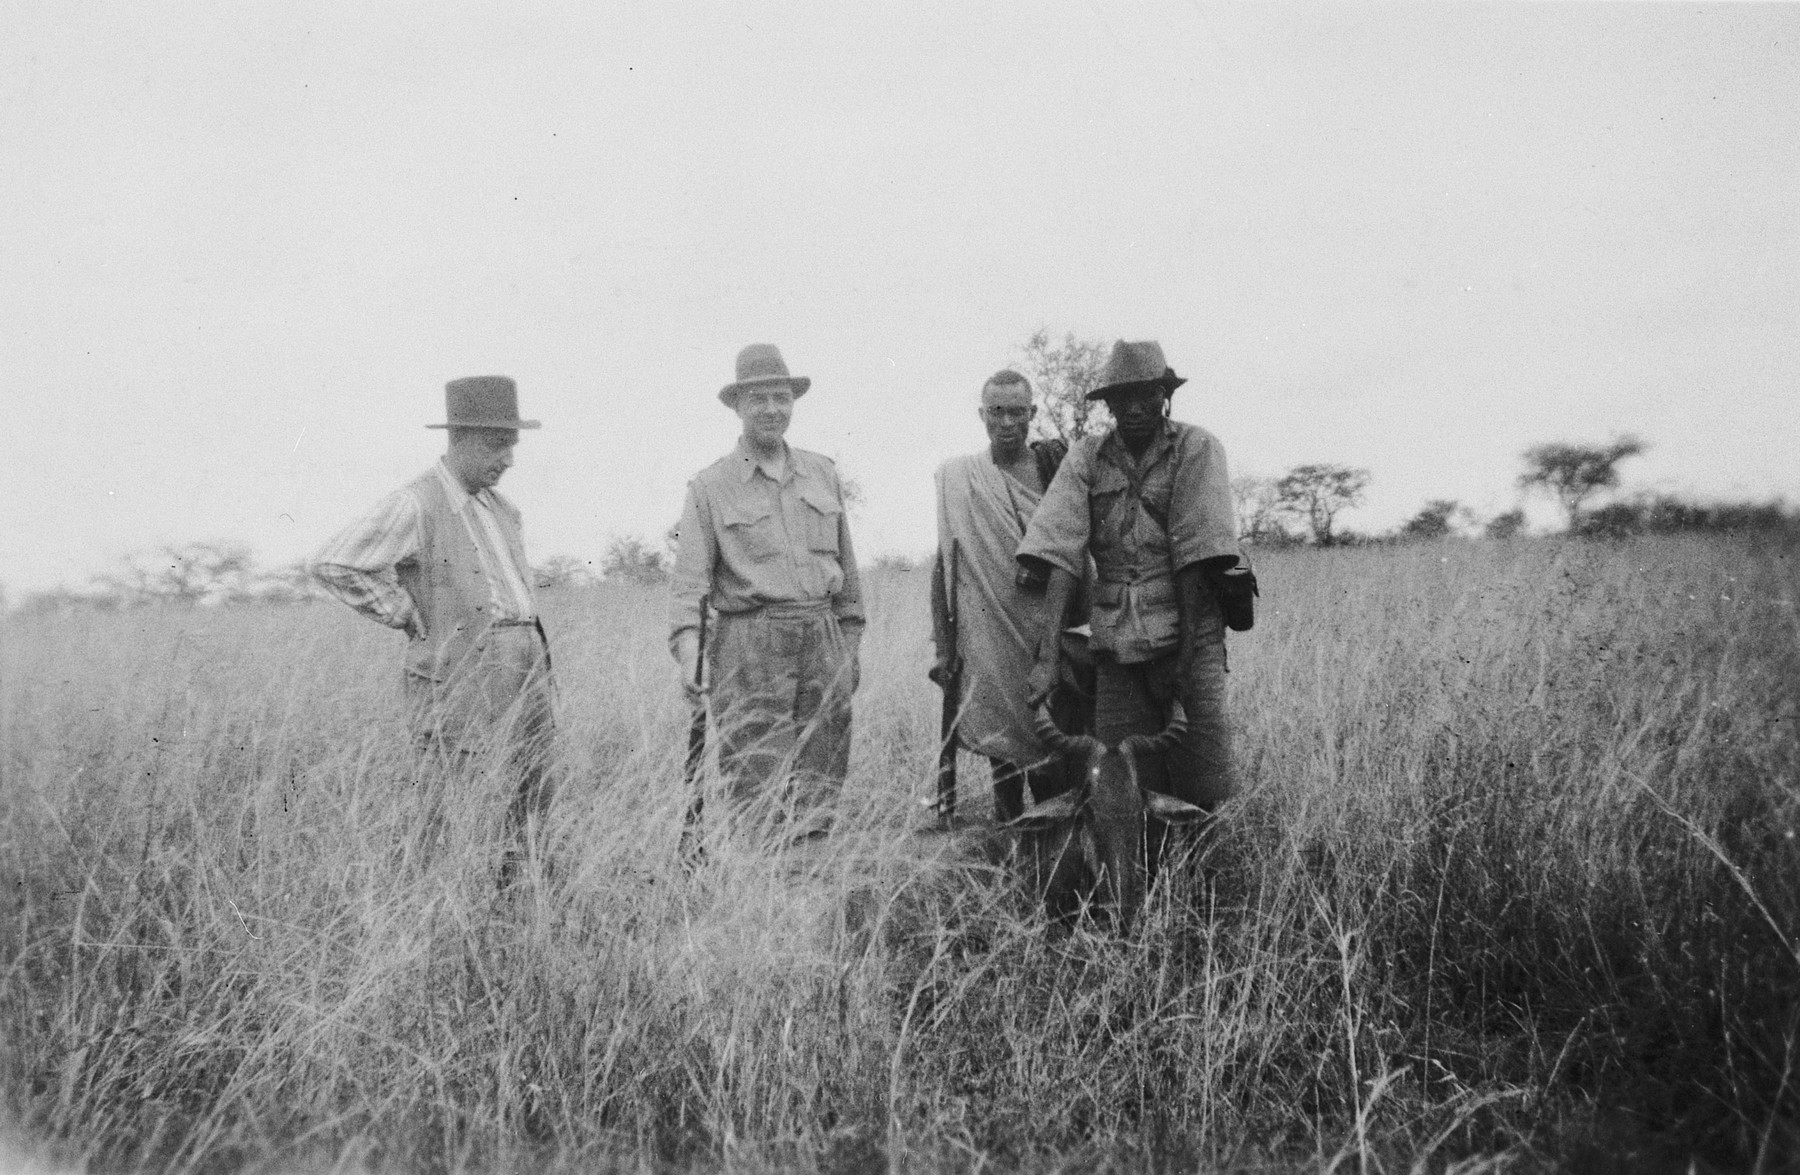 German Jewish refugee Heinrich Weyl poses with friends and an African employee in the bush while on a safari in Kenya.